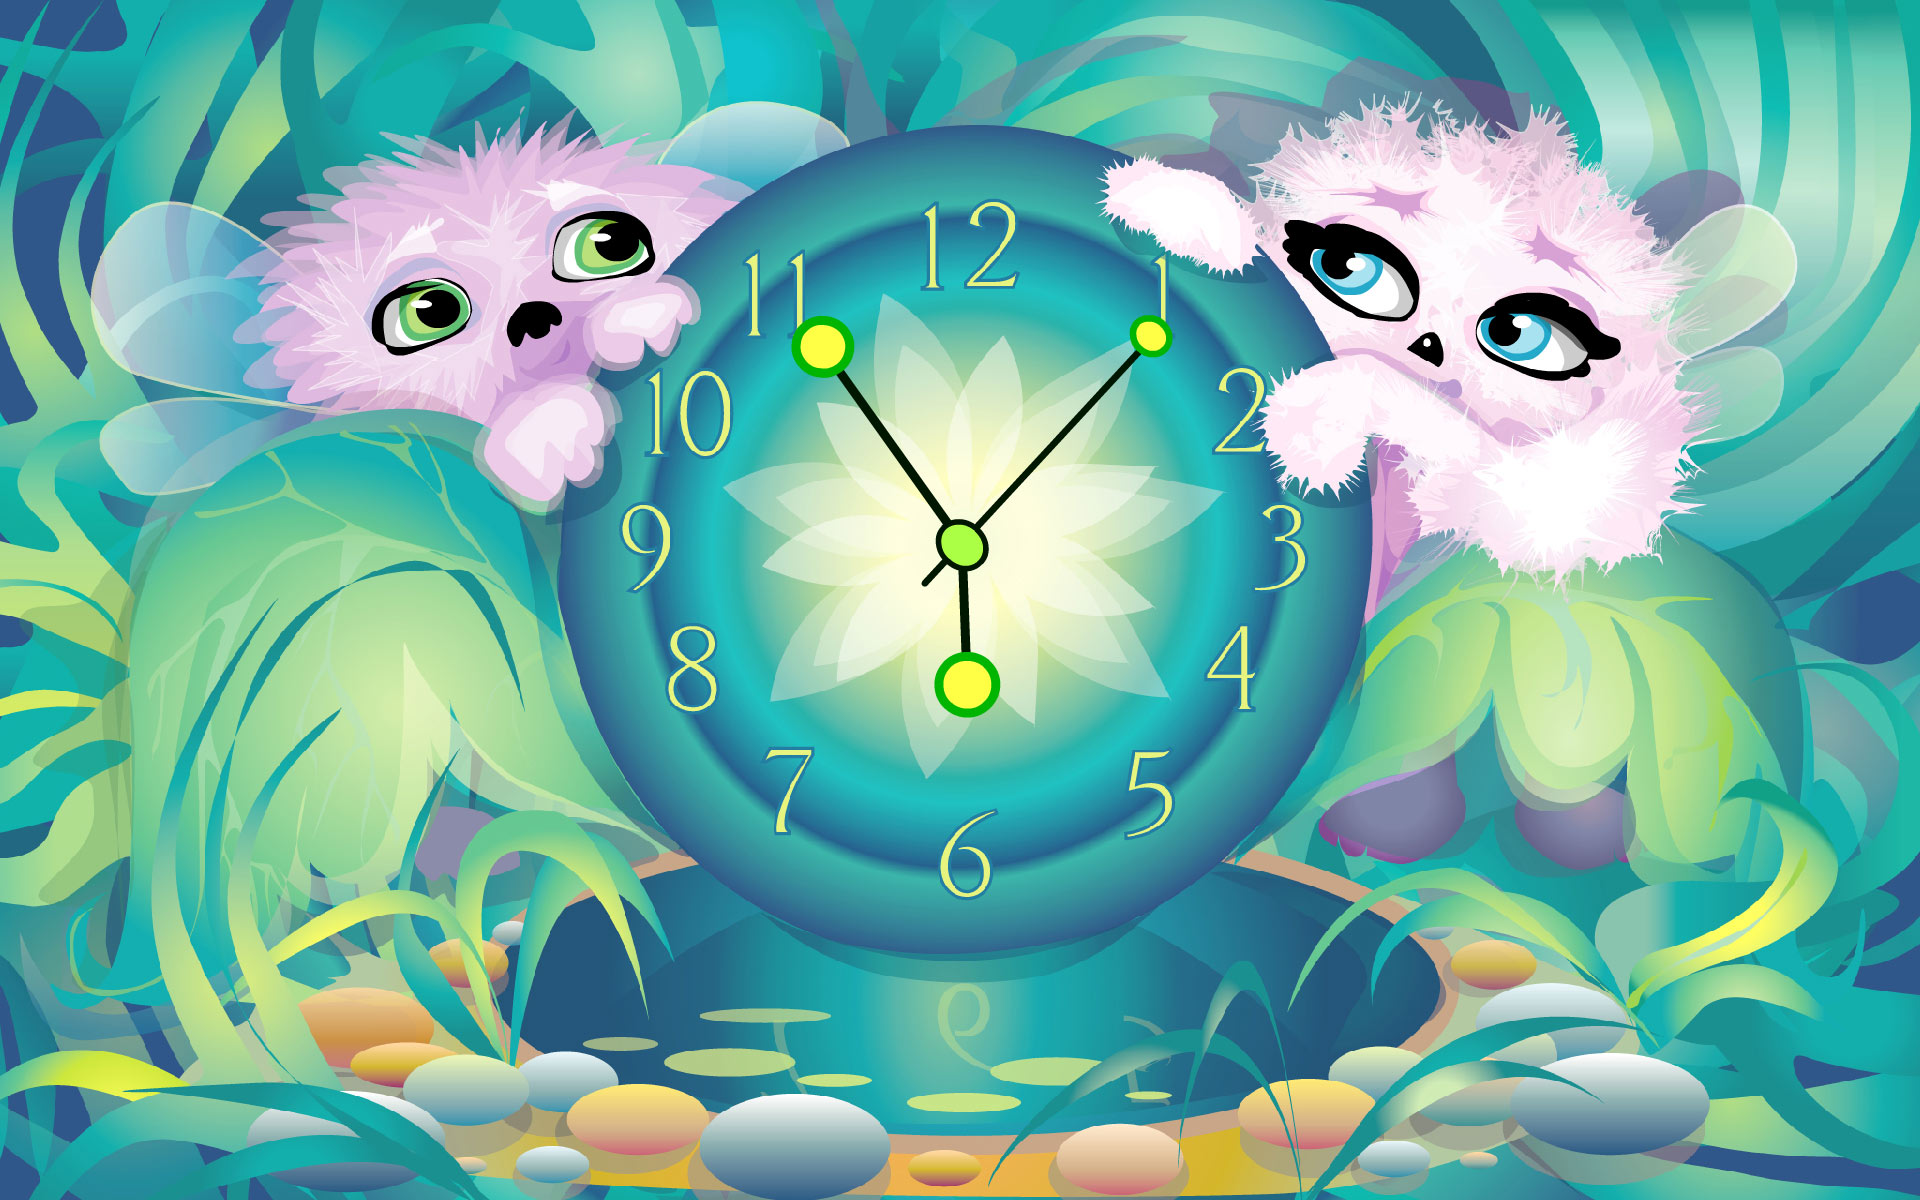 Alien Pets' Clock screensaver - download free screensaver.